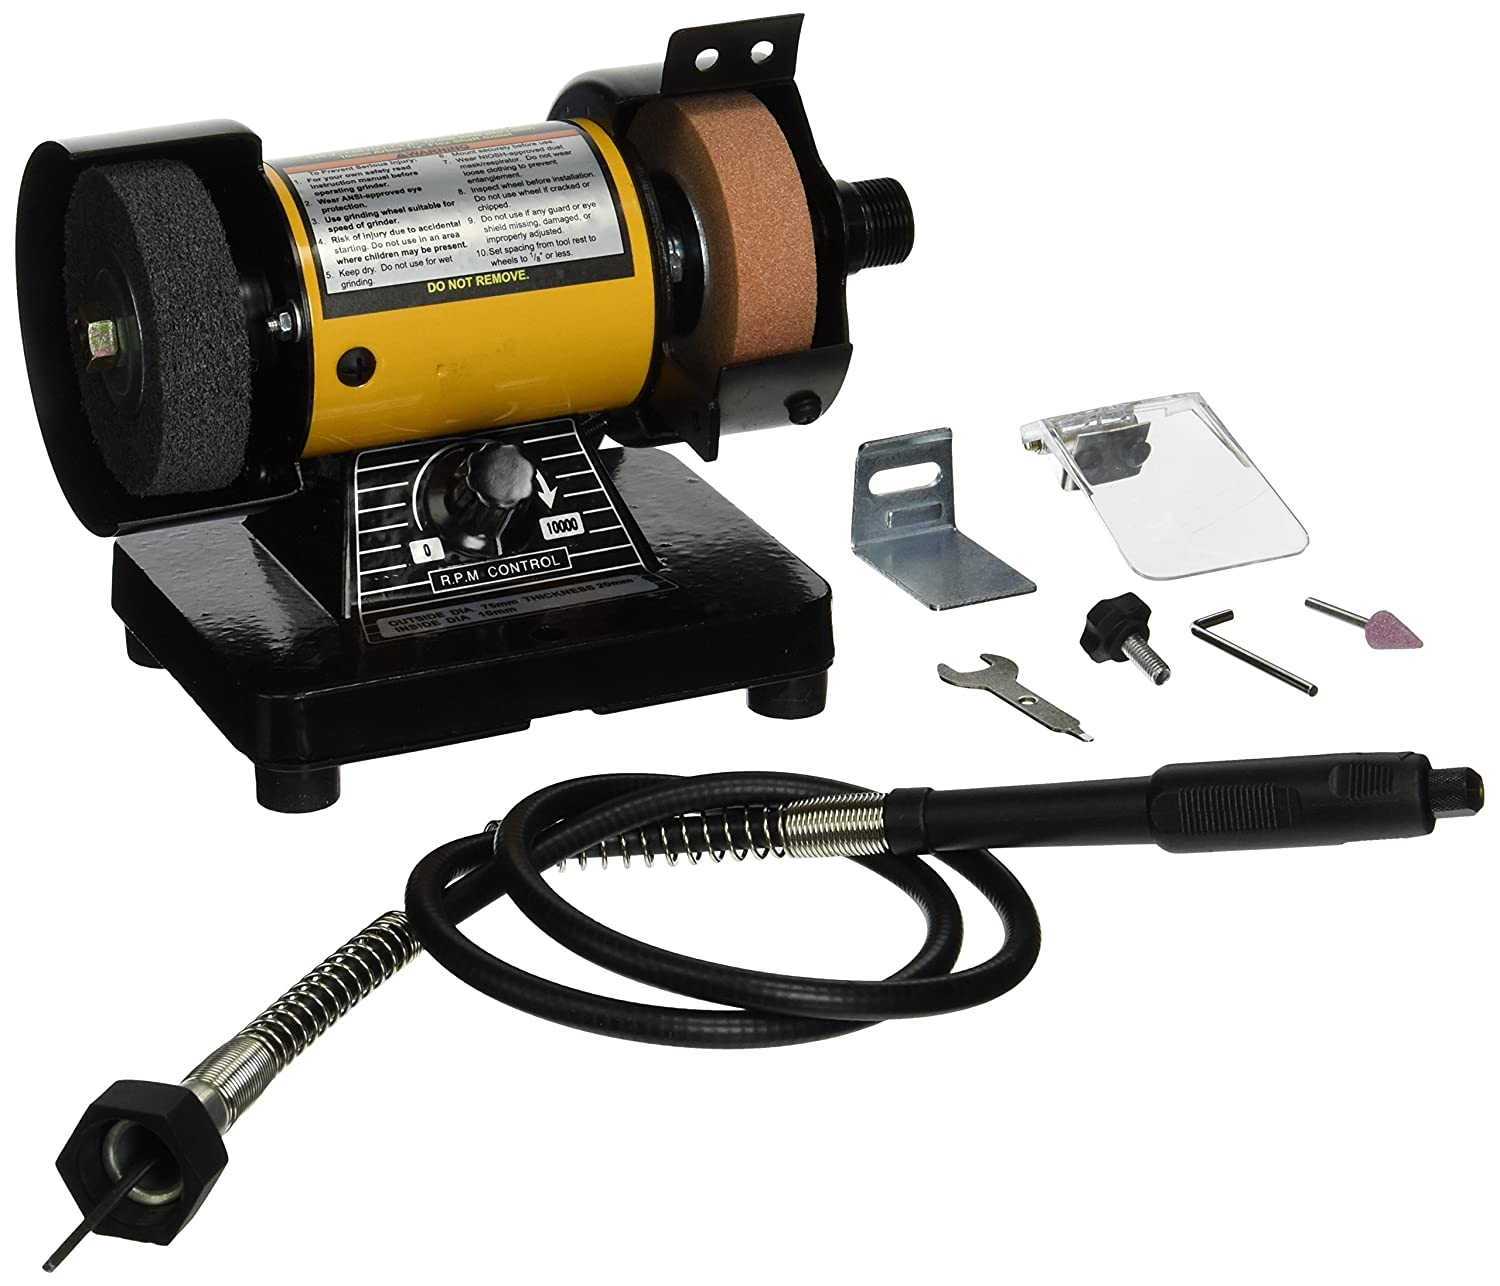 TruePower Mini Bench Grinder